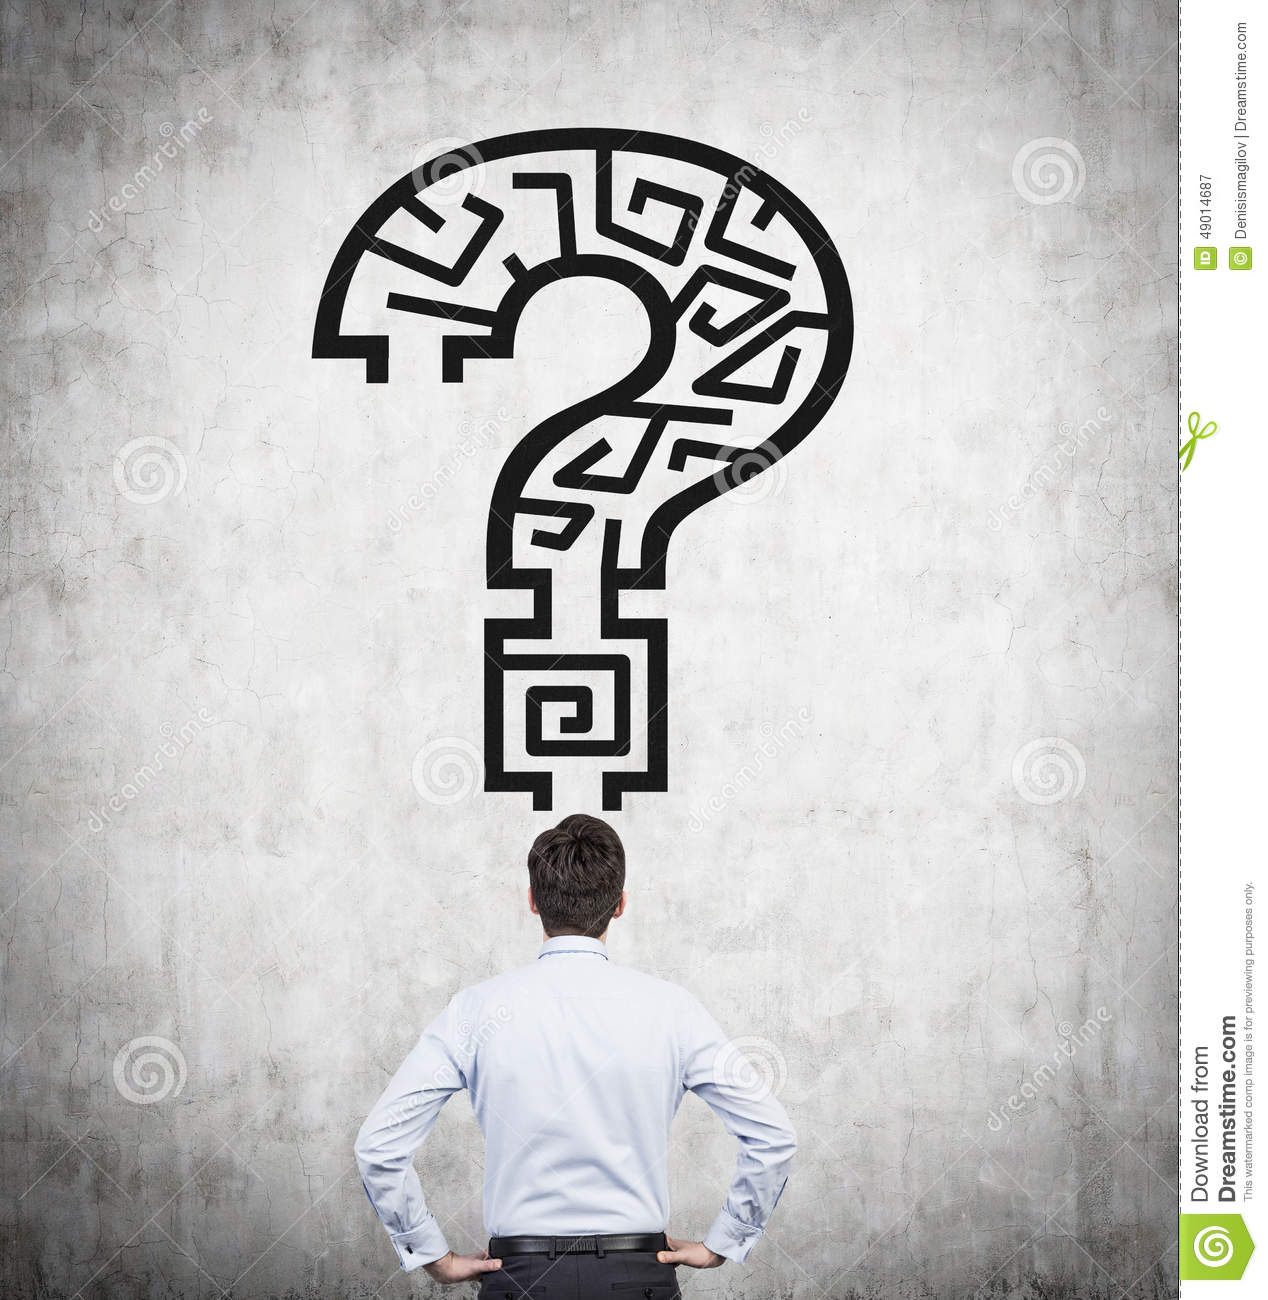 Question Mark With Maze Stock Photo - Image: 49014687